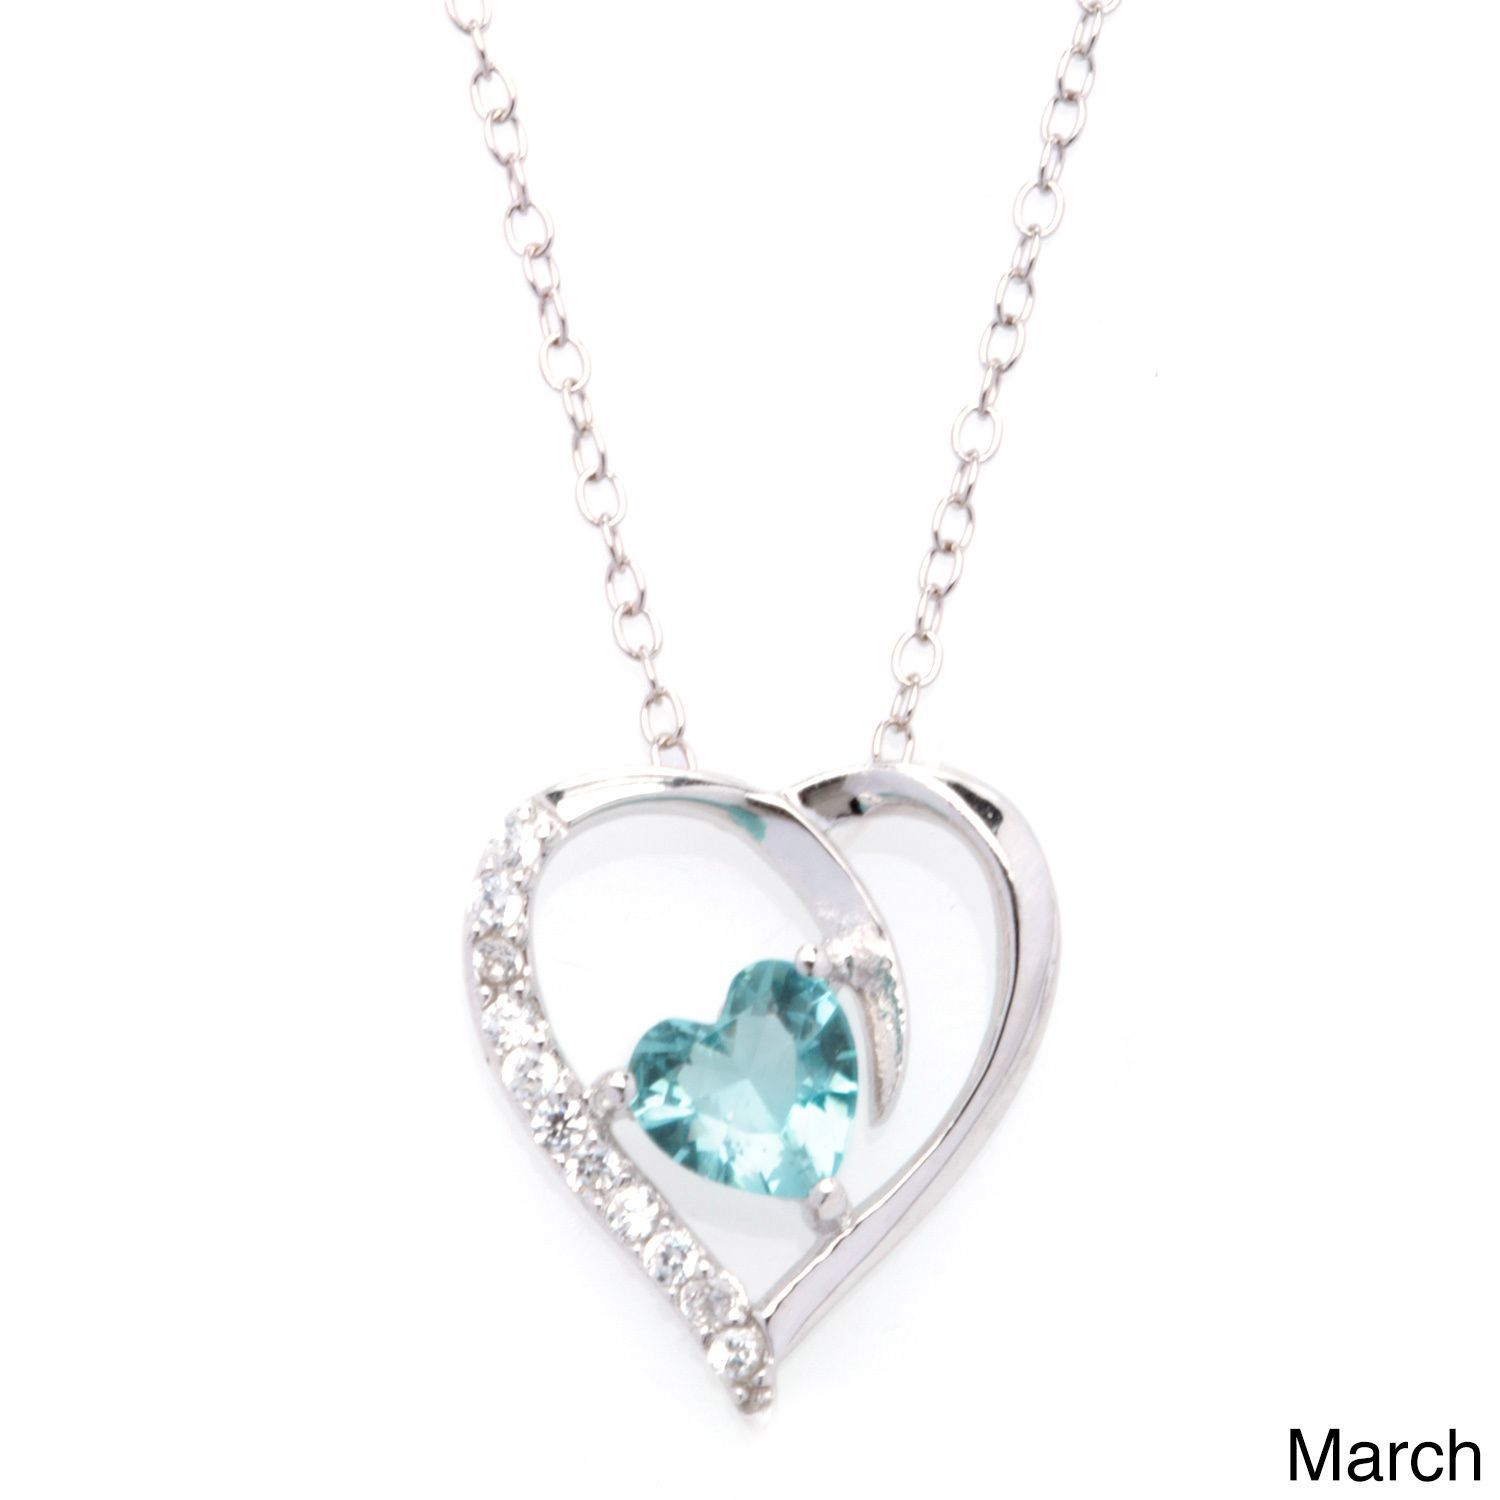 Blue Birthstone Women Pendant Necklace with 18 inches Chain Rhodium Plated hV8TlCGF